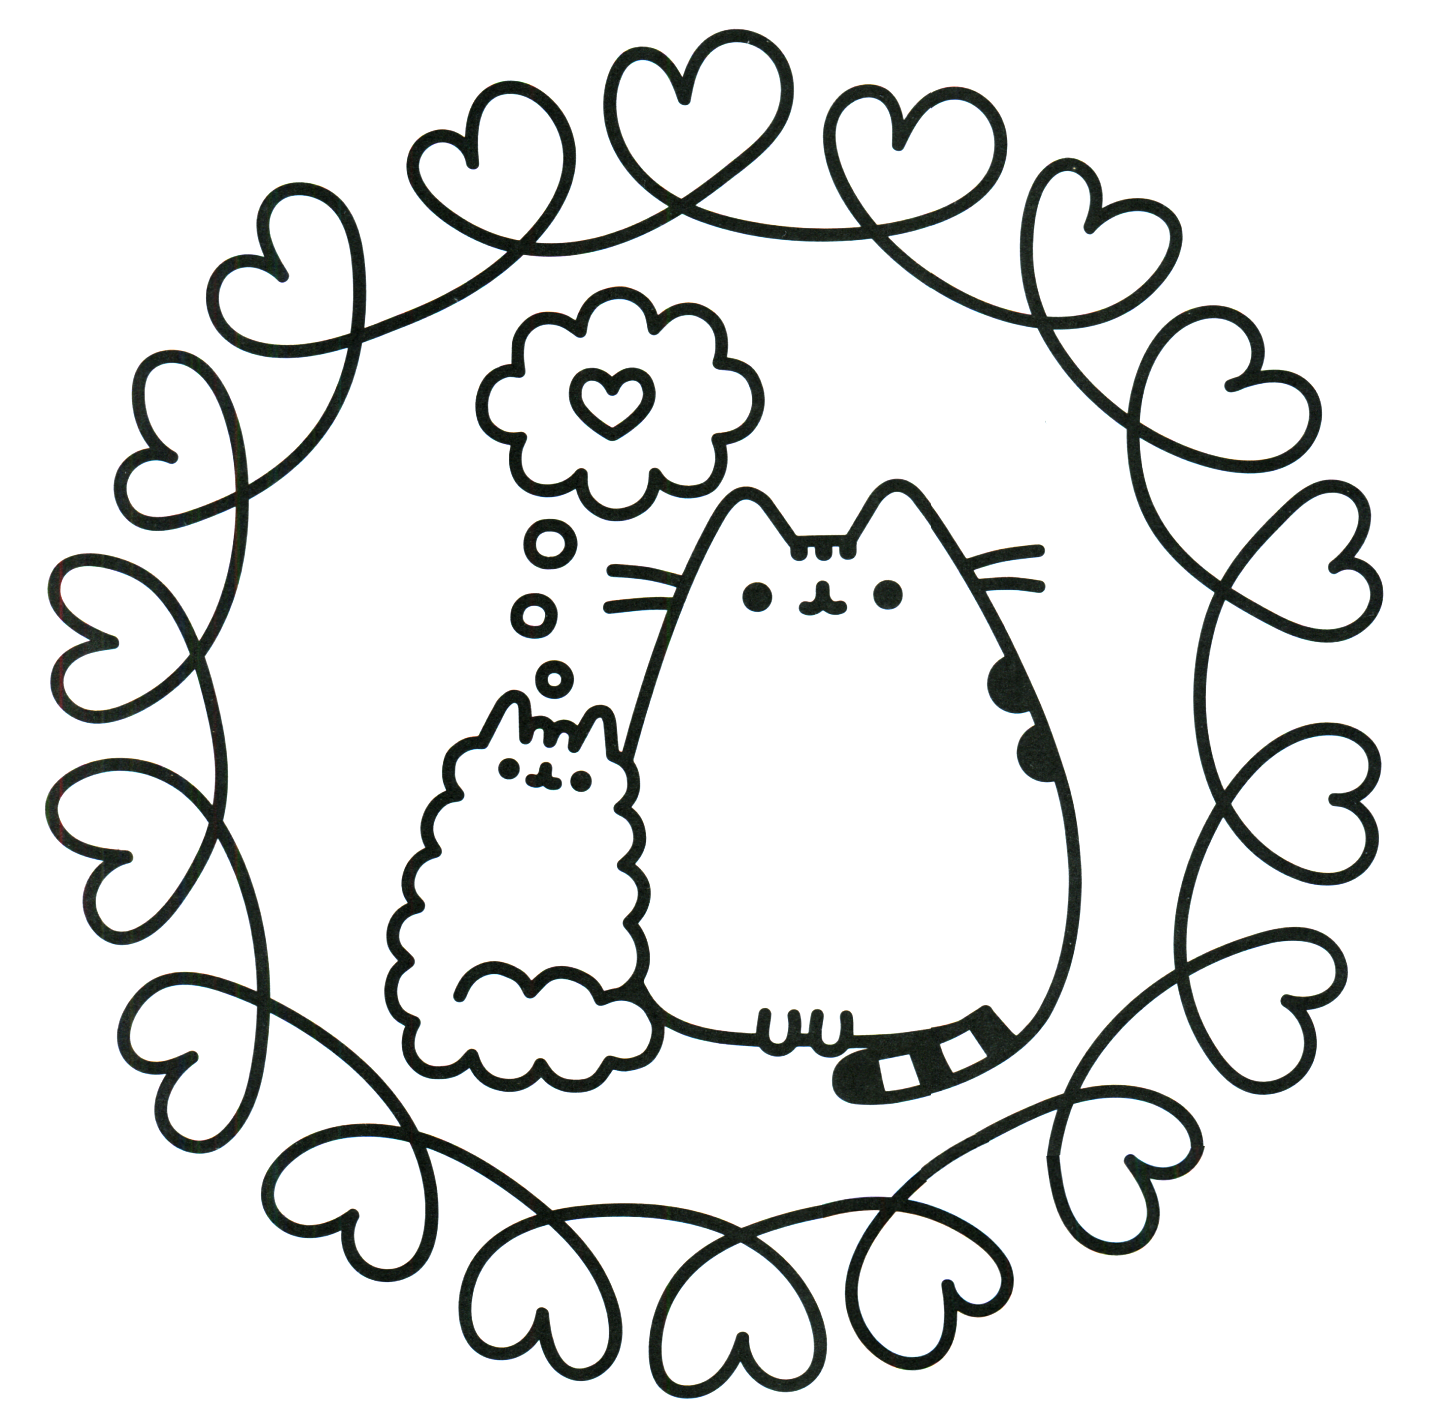 Pusheen Coloring Pages - Best Coloring Pages For Kids